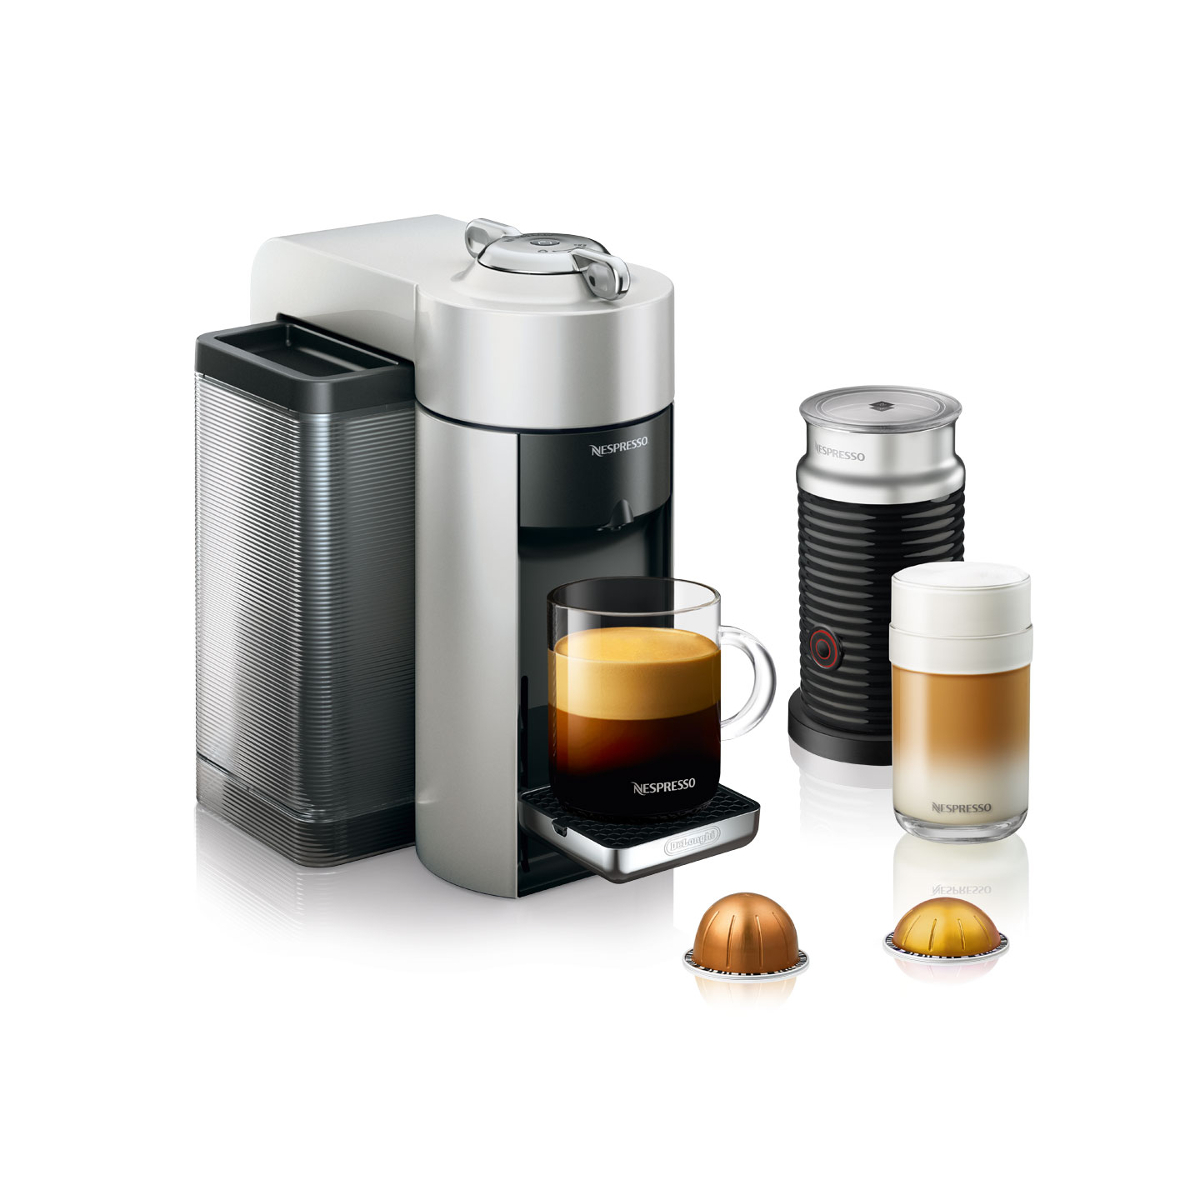 DeLonghi Nespresso Vertuo Silver Coffee and Espresso Machine with Aeroccino Milk Frother